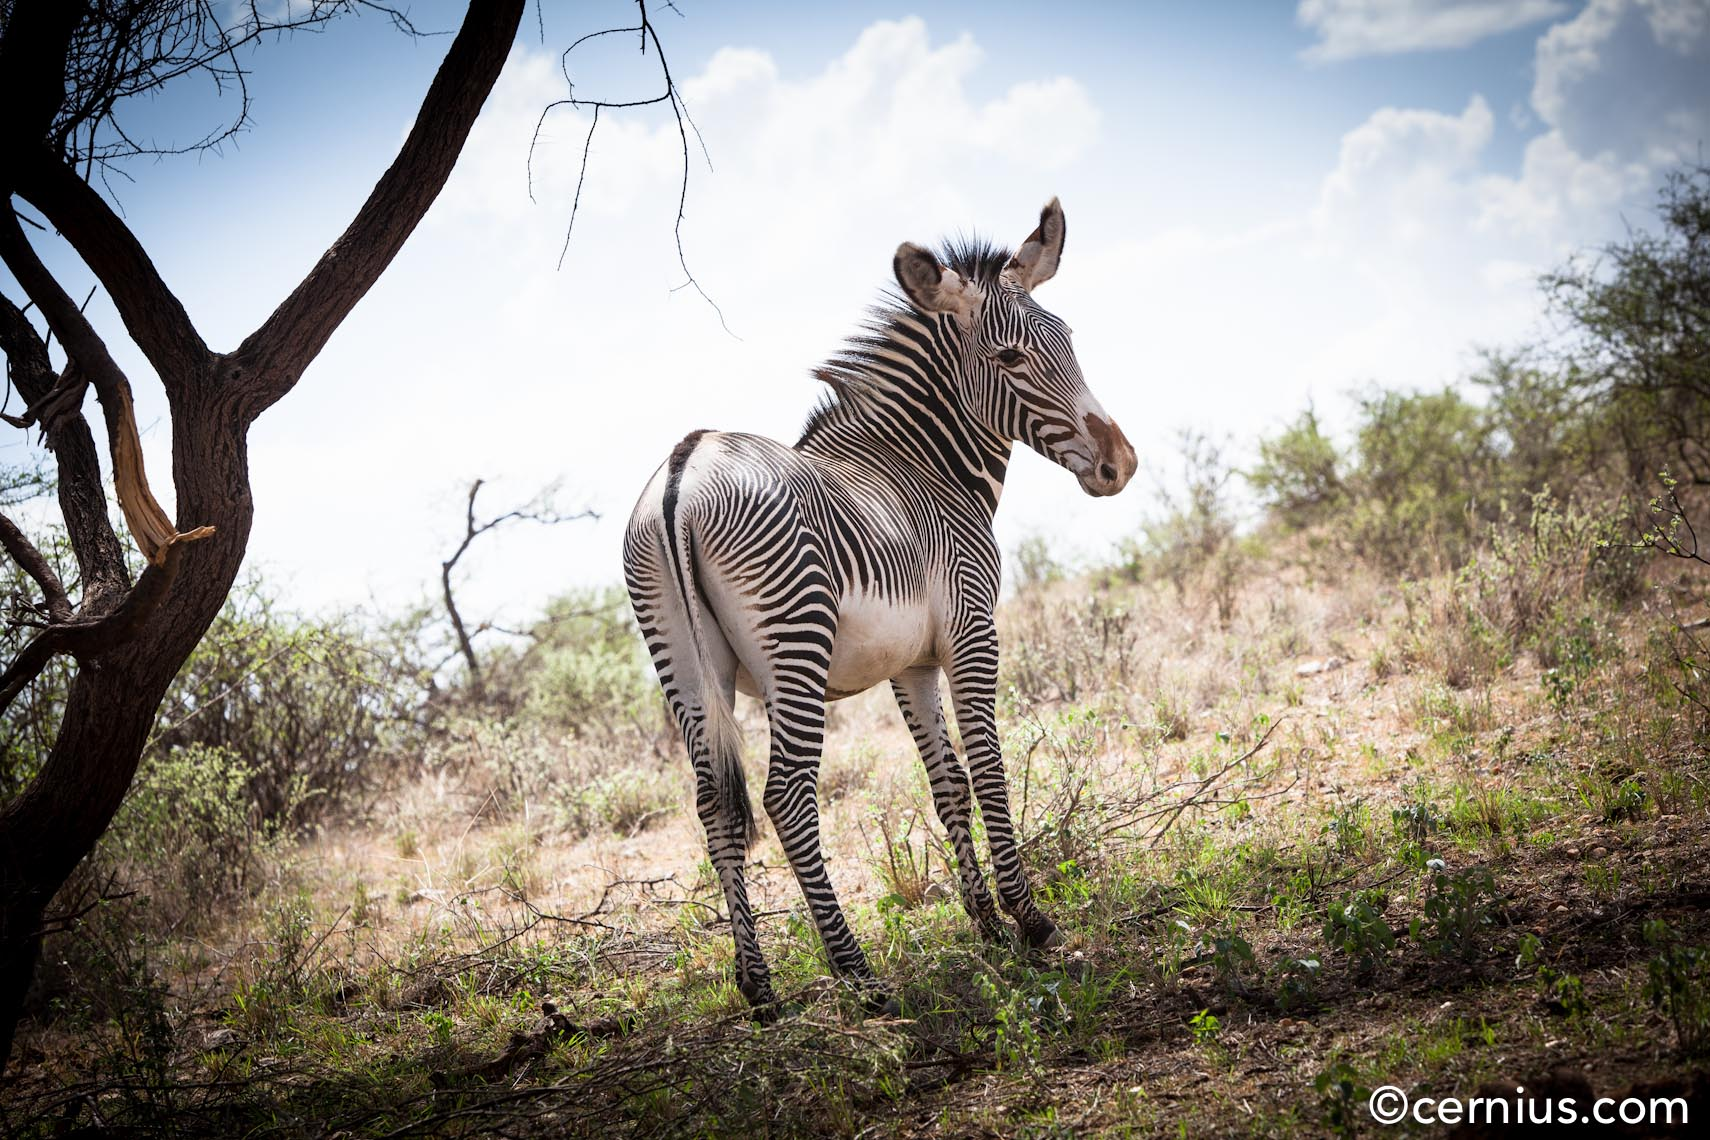 Animals | Zebra, Kenya